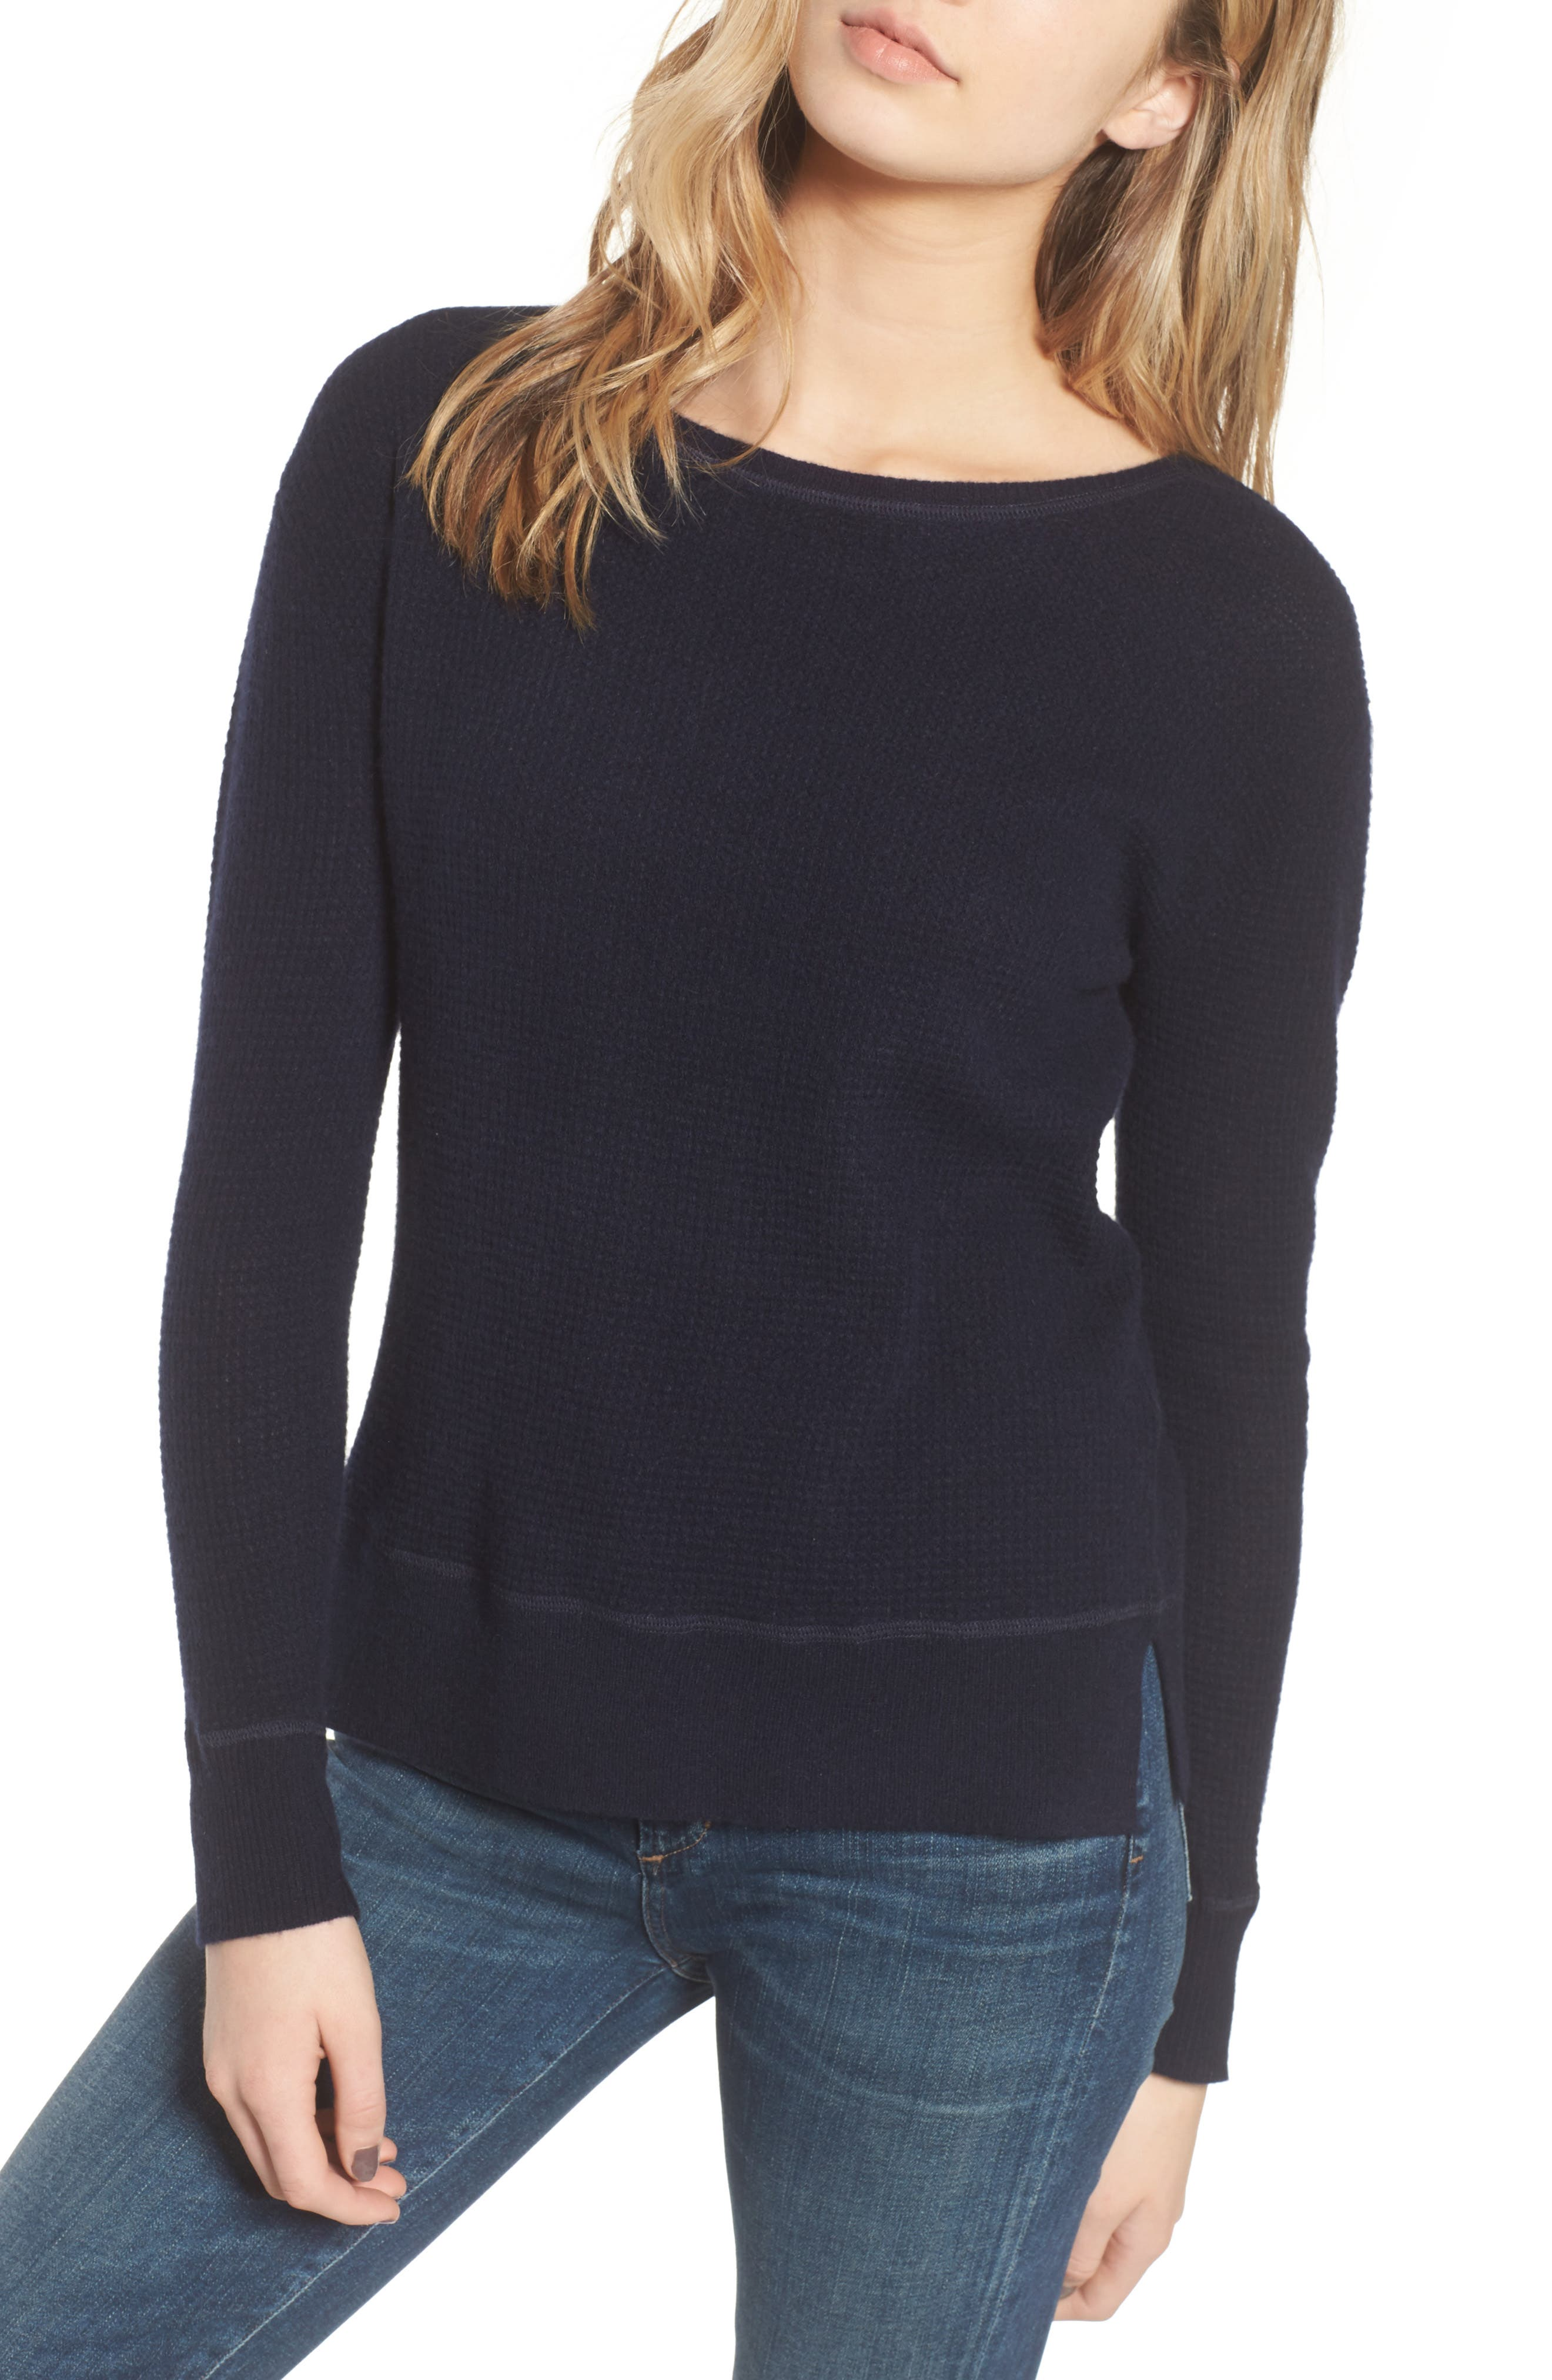 Alternate Image 1 Selected - James Perse Thermal Cashmere Top